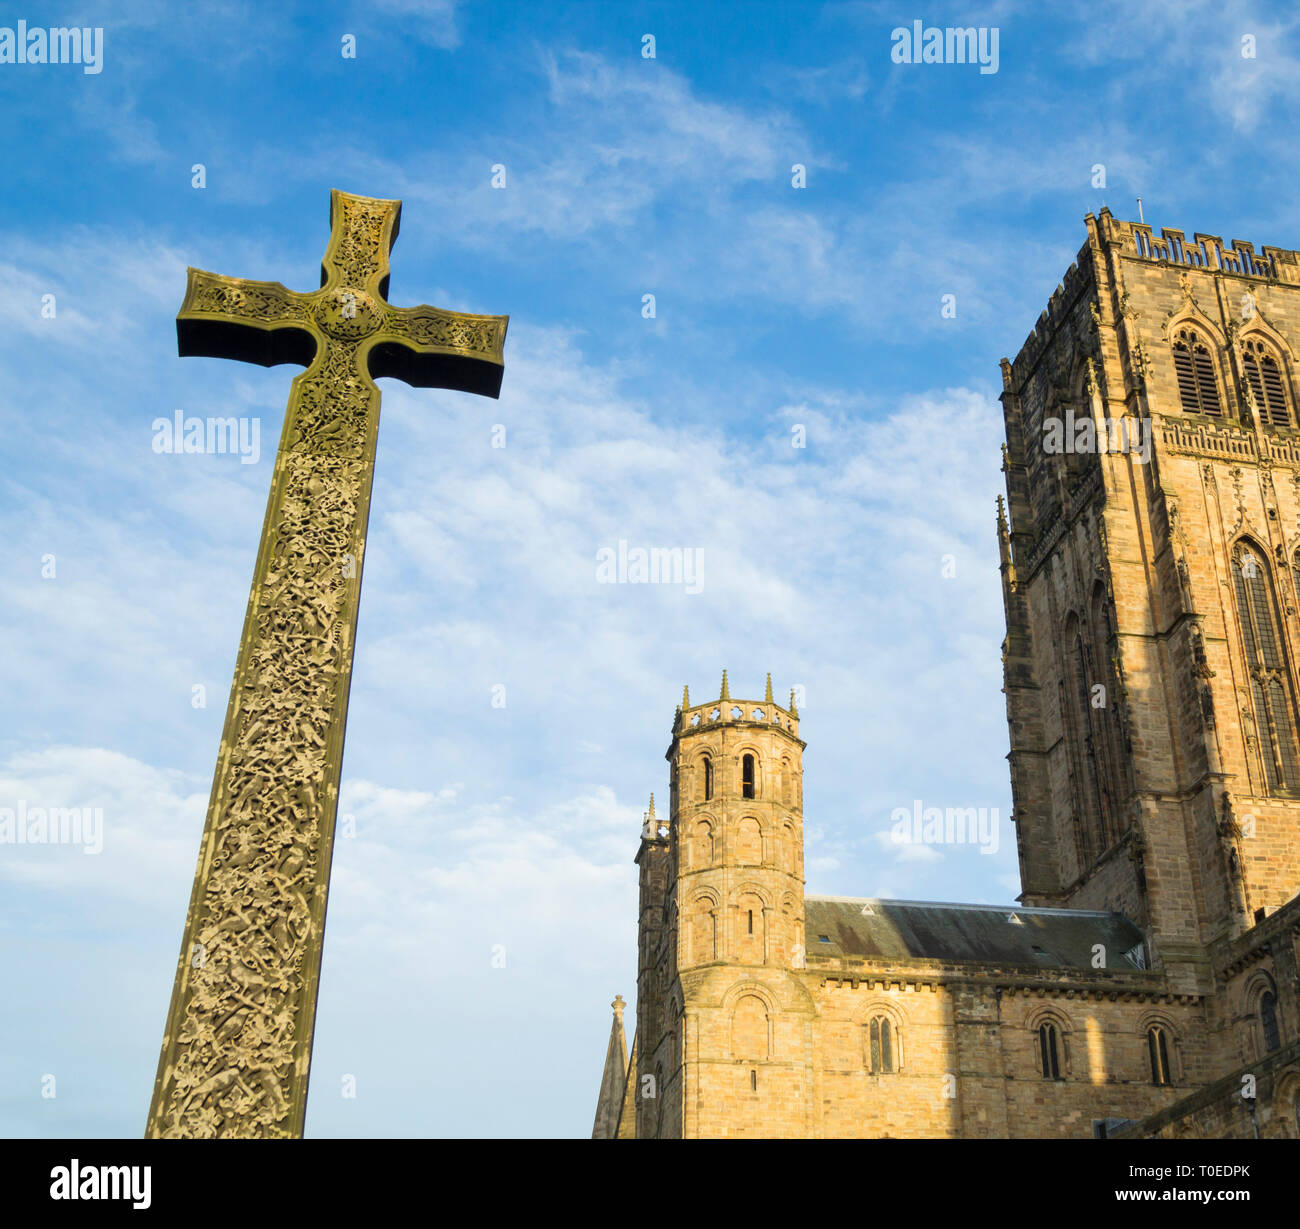 Cross outside Durham cathedral. UK - Stock Image